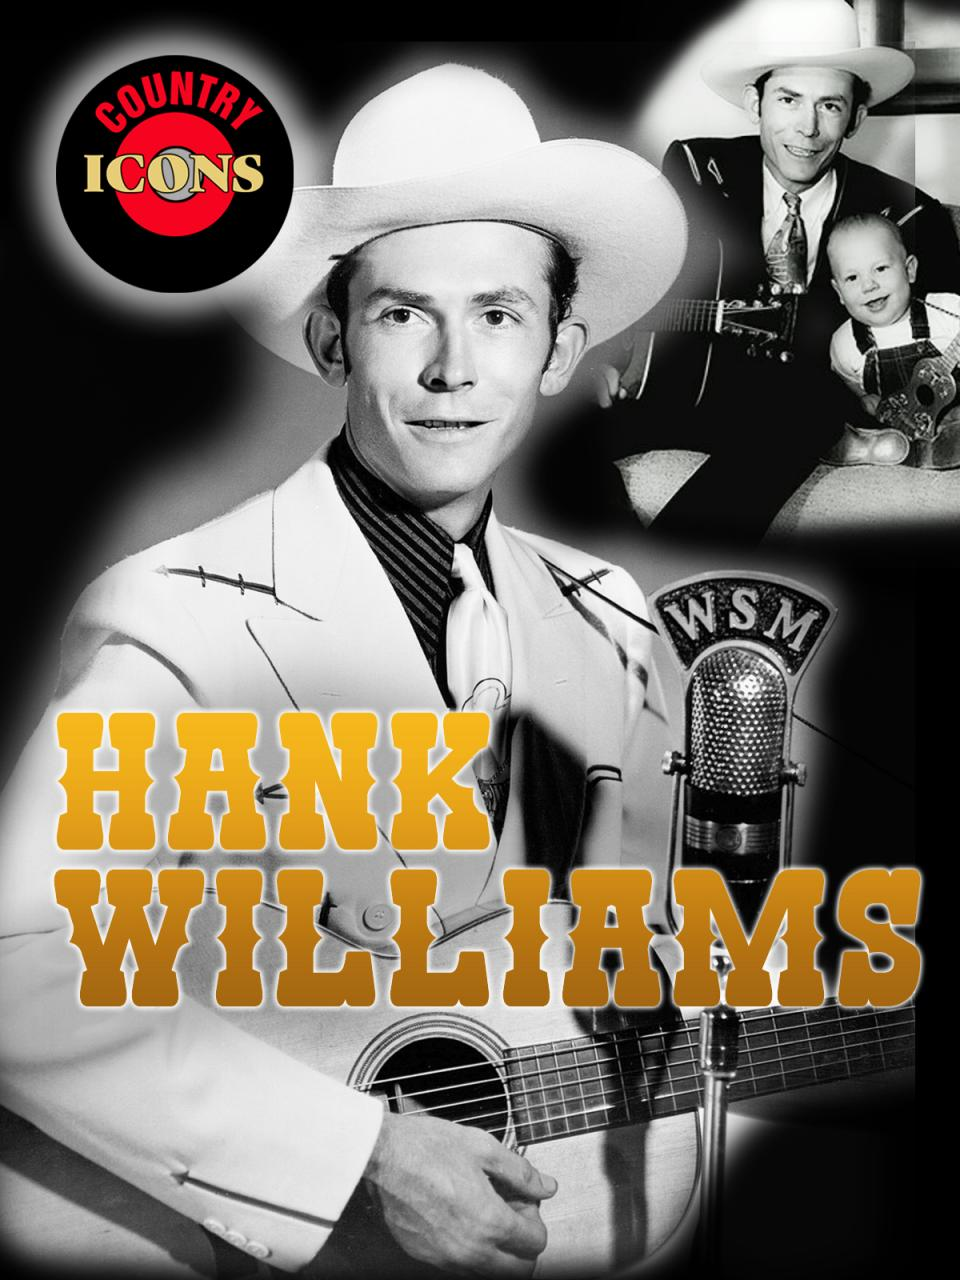 Country Icons: Hark Williams Sr.